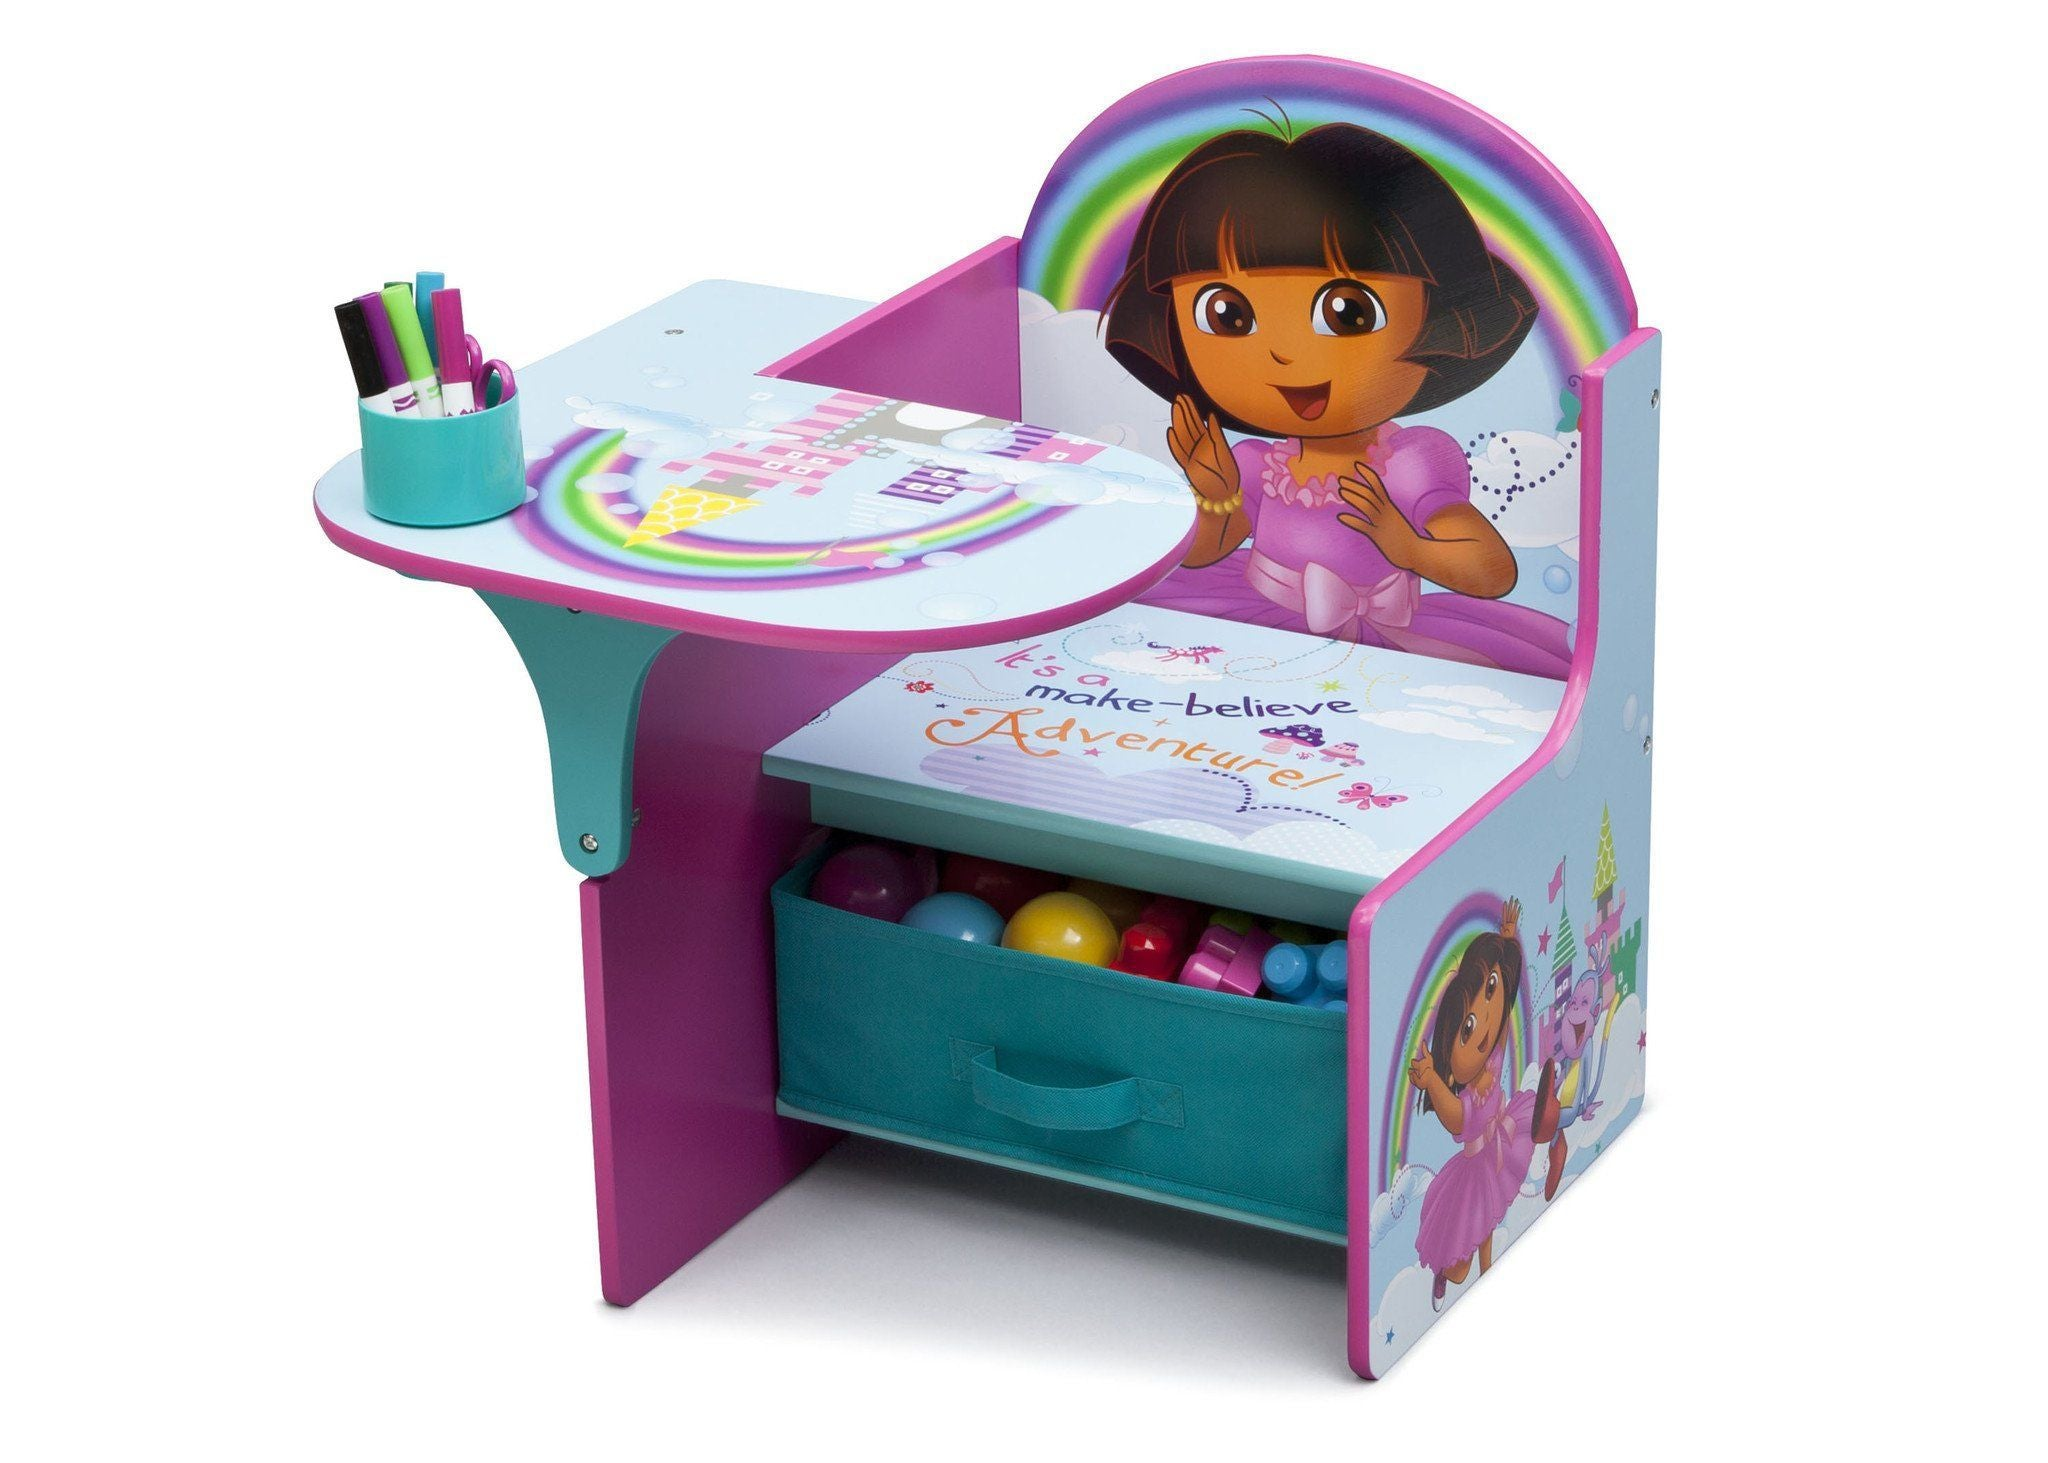 ... Delta Children Dora the Explorer Chair Desk with Storage Bin with Props a2a  sc 1 st  Delta Children & Dora the Explorer Chair Desk with Storage Bin | Delta Children